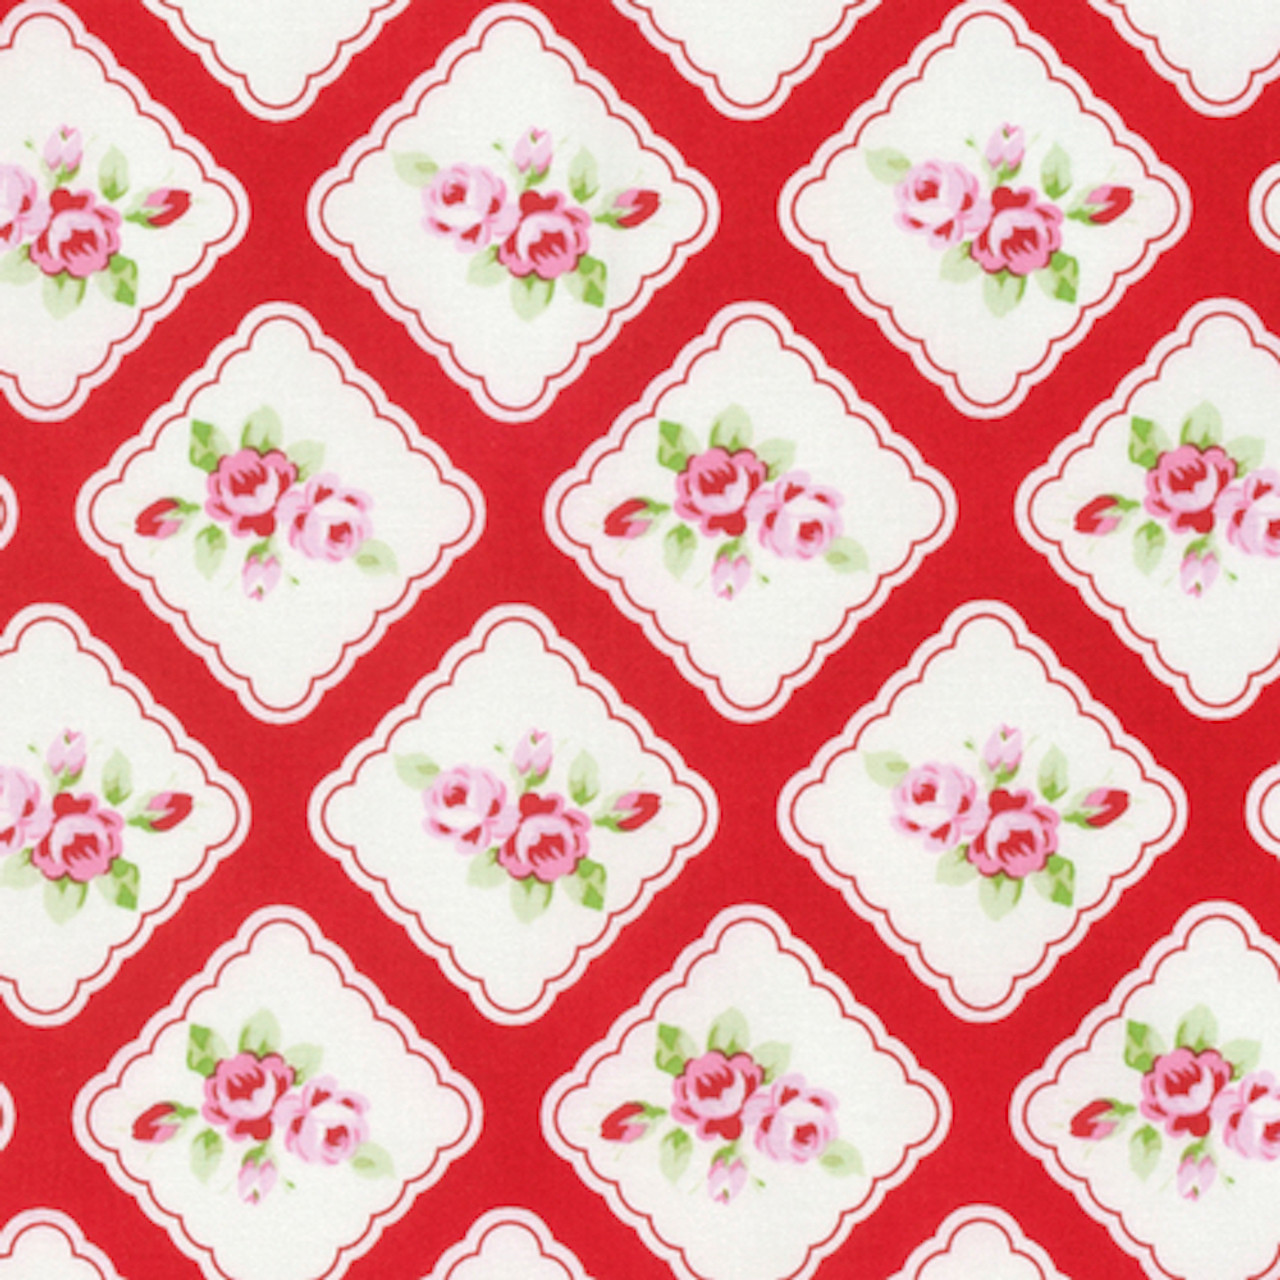 Tanya Whelan Rambling Rose PWTW130 Framed Rosebuds Red Cotton Fabric By Yard